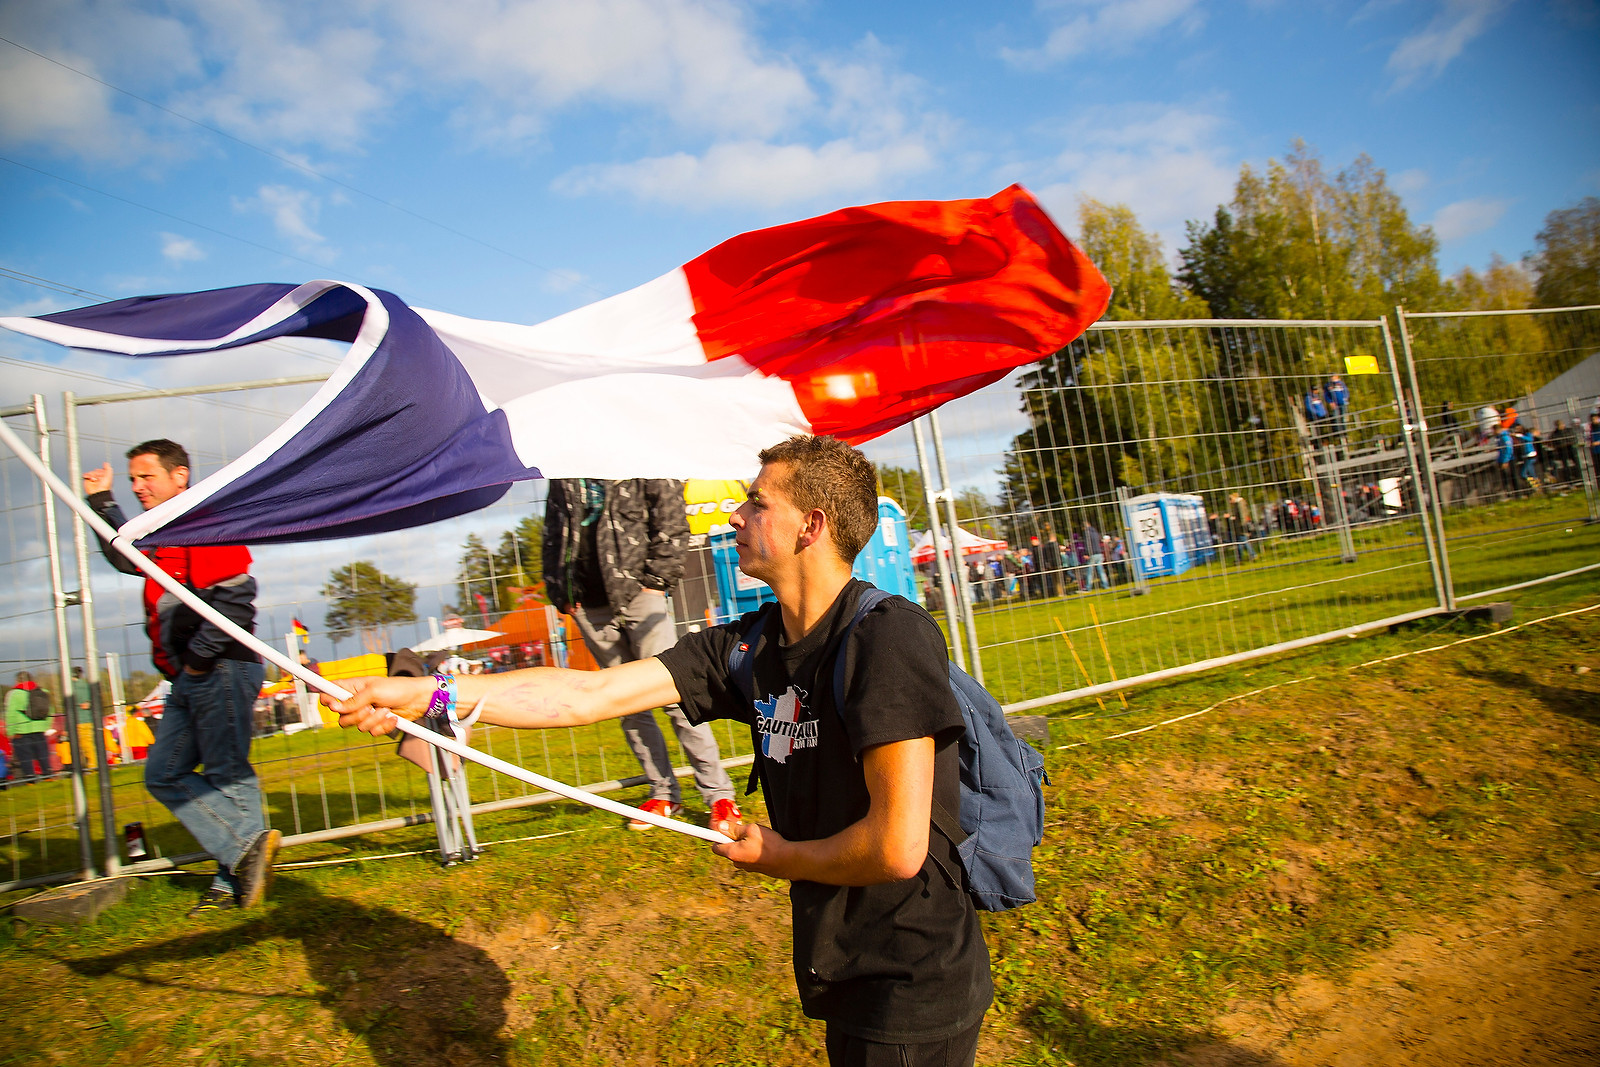 French Fans - kardy - Motocross Pictures - Vital MX